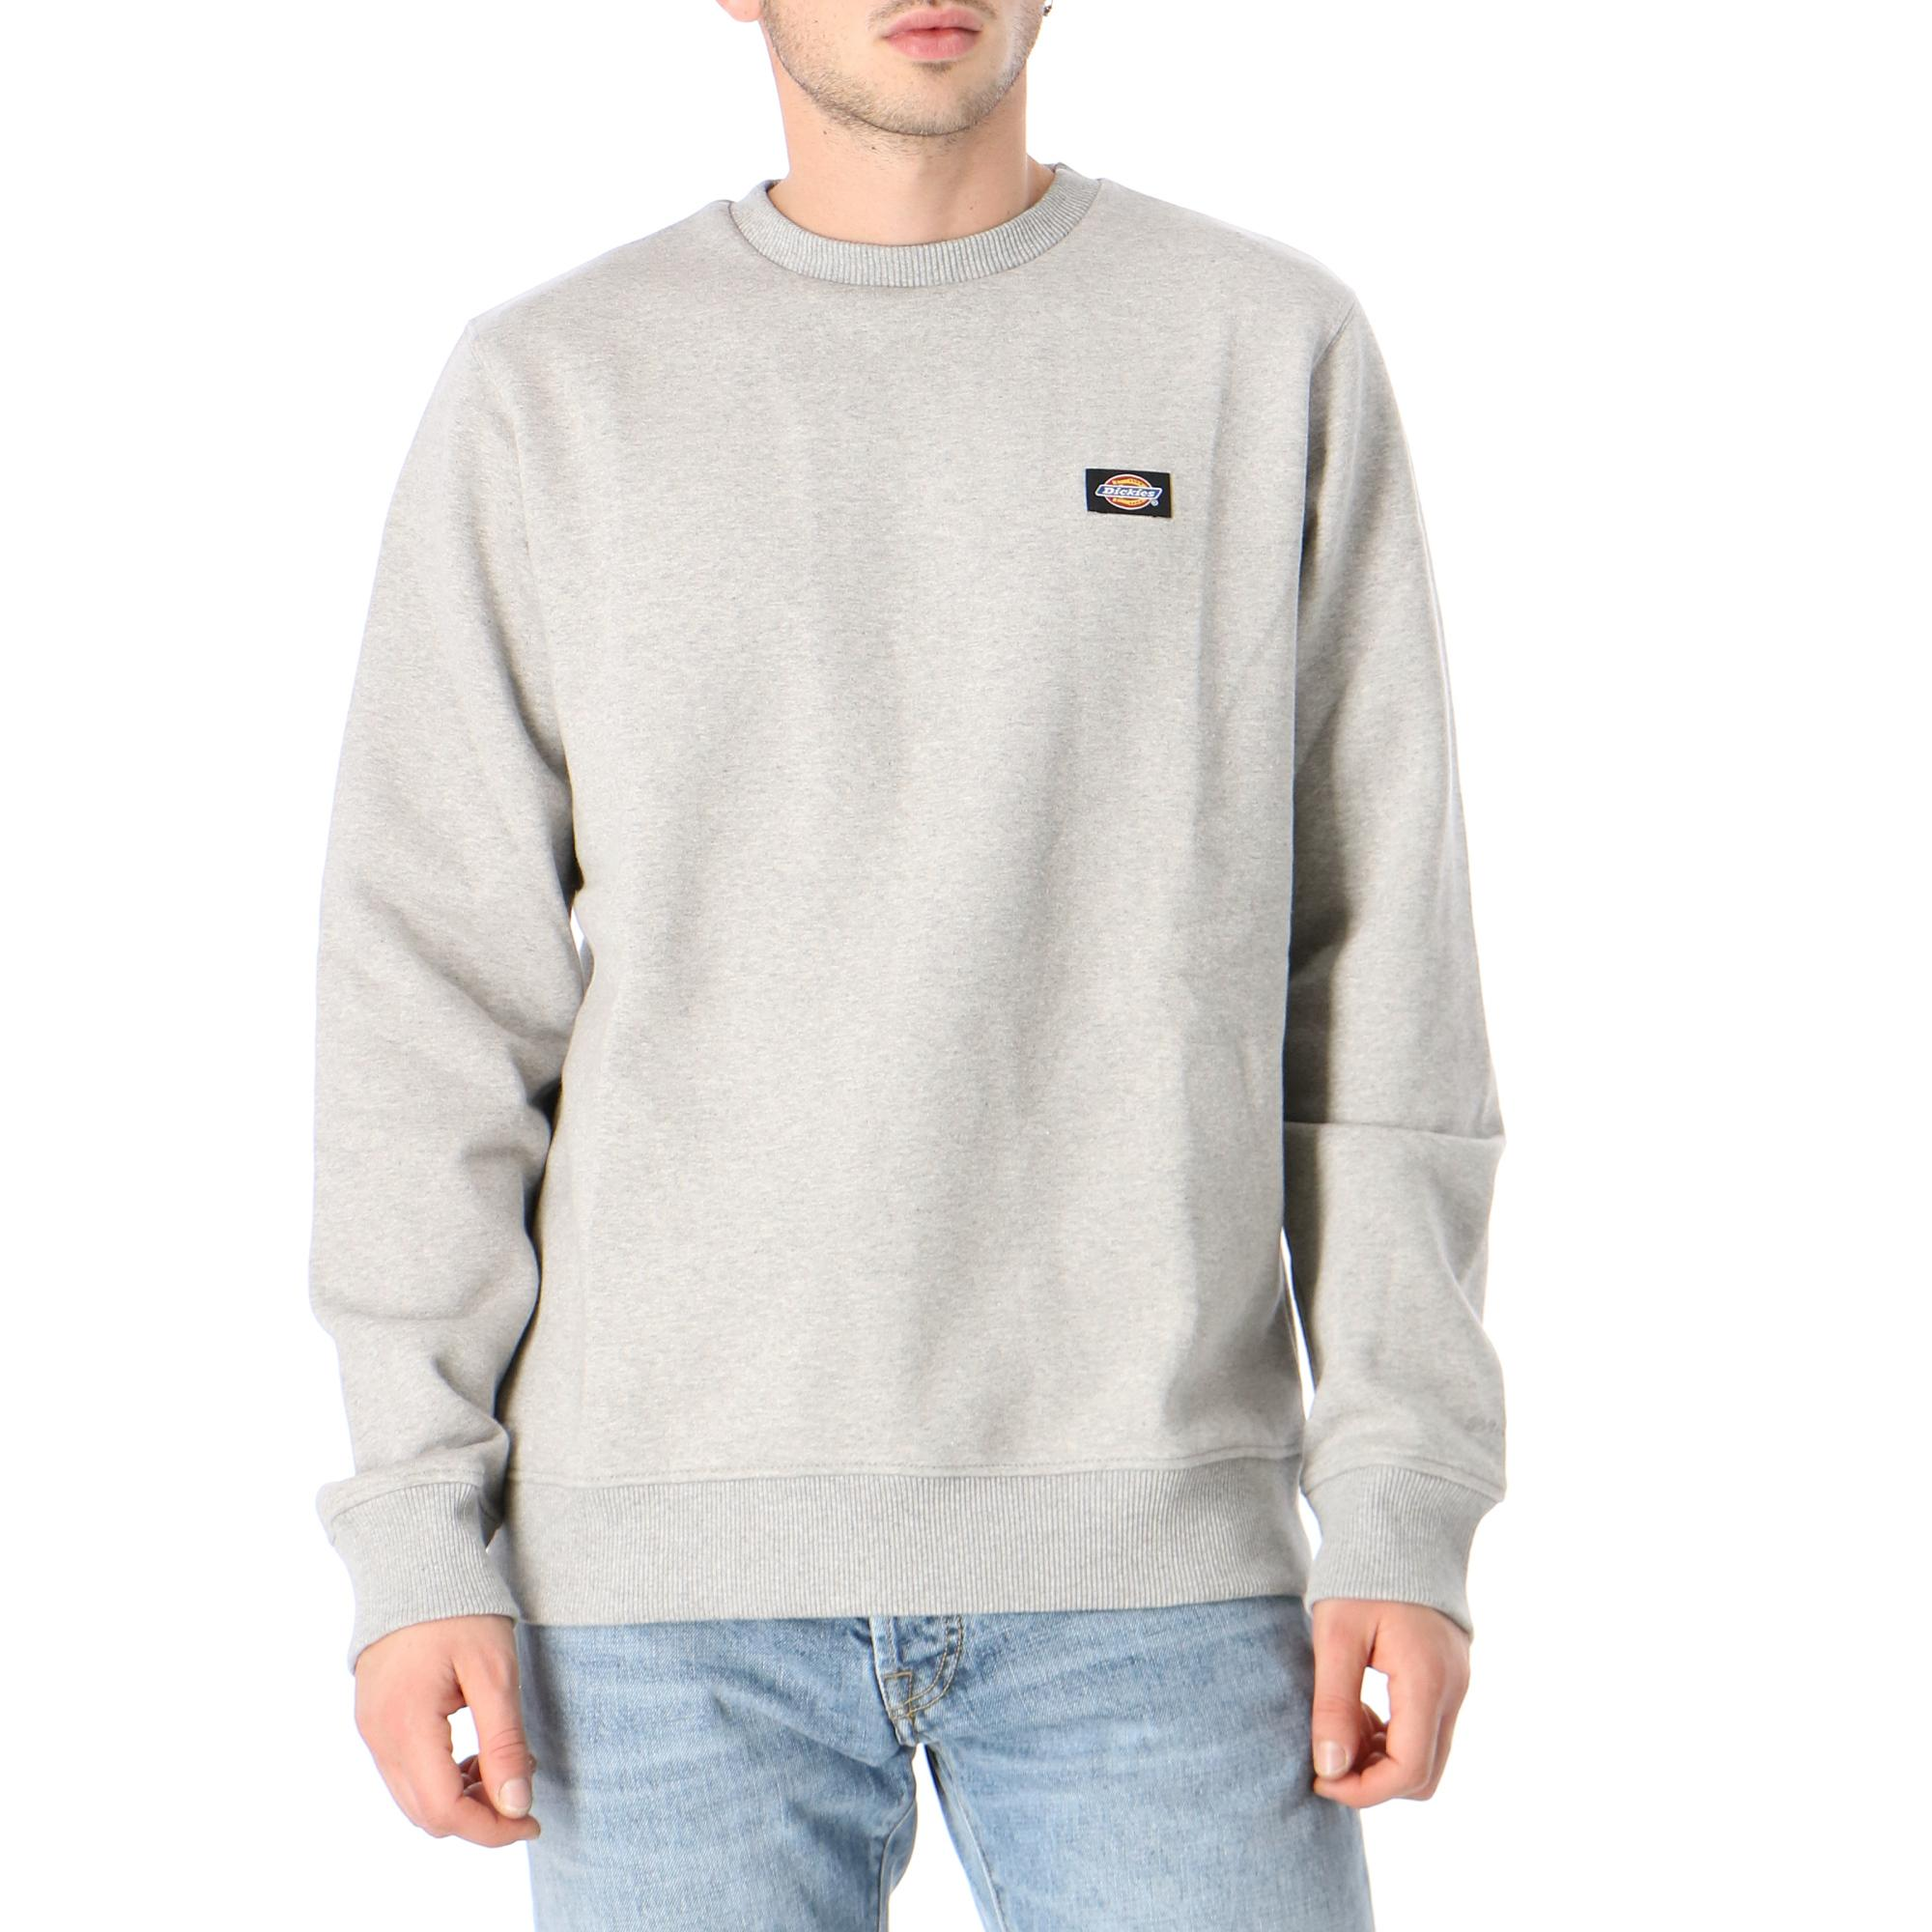 Dickies New Jersey Regular Sweatshirt GREY MELANGE